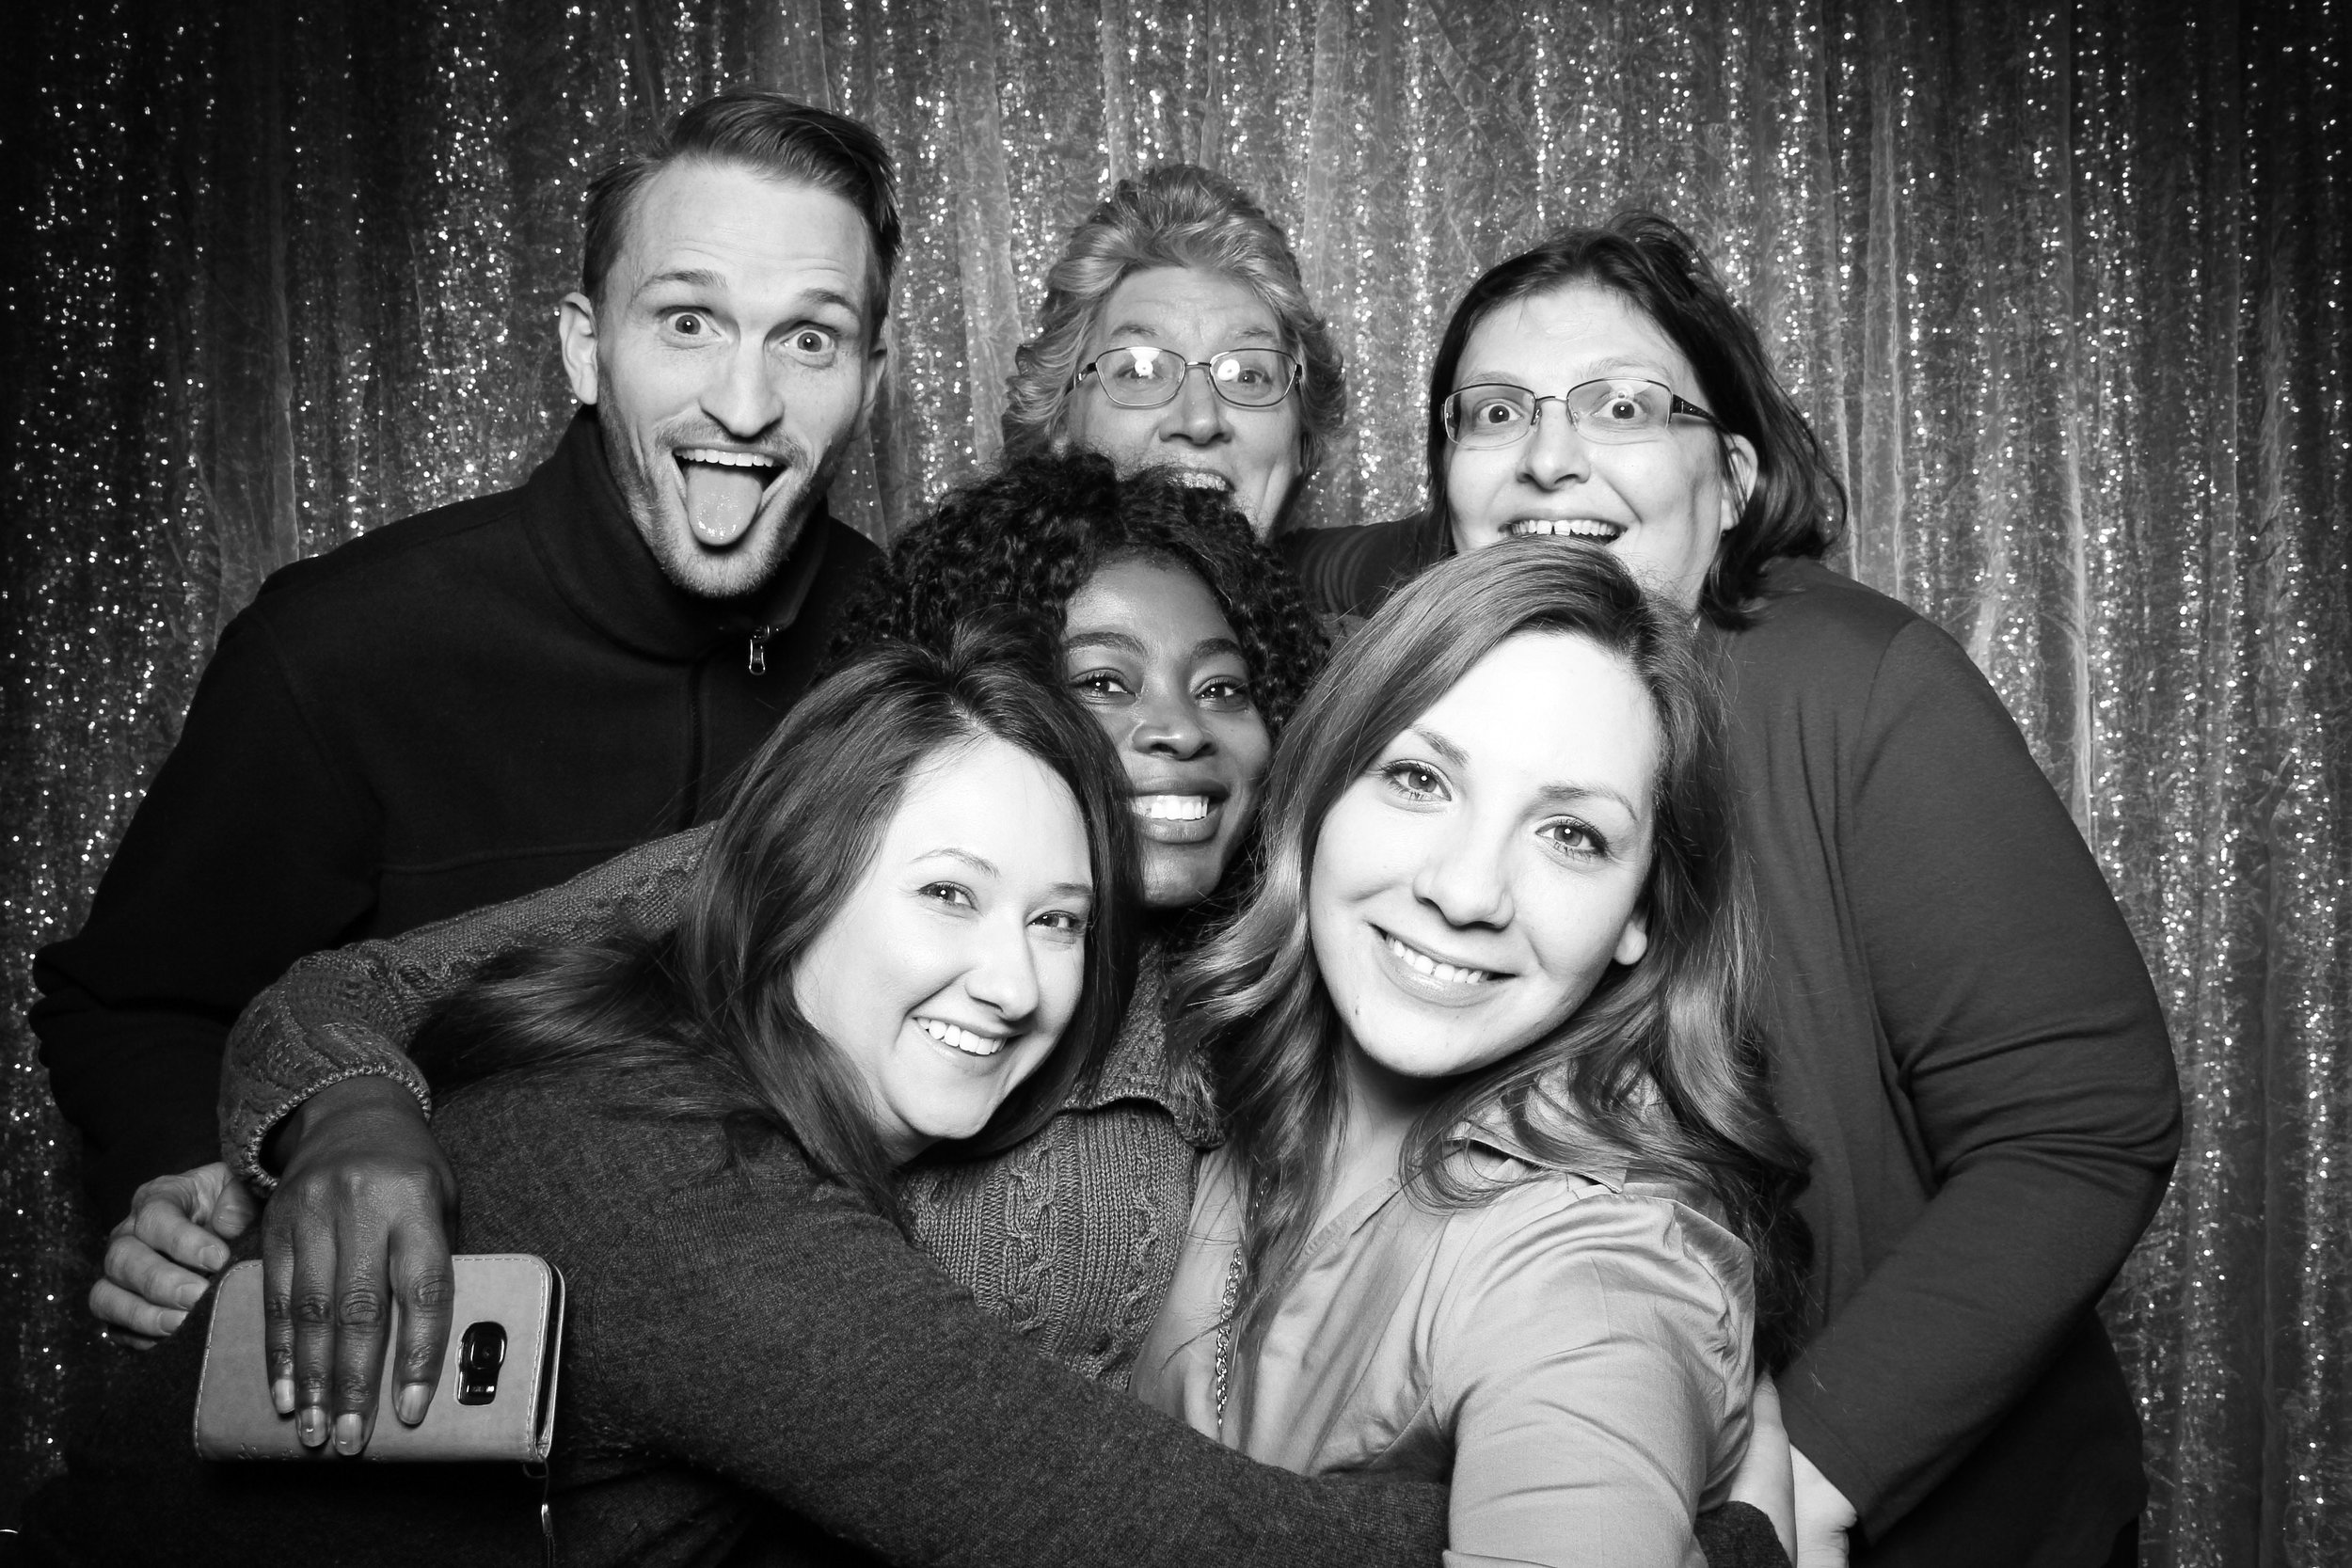 Chicago_Vintage_Wedding_Photobooth_Downers_Grove_11.jpg